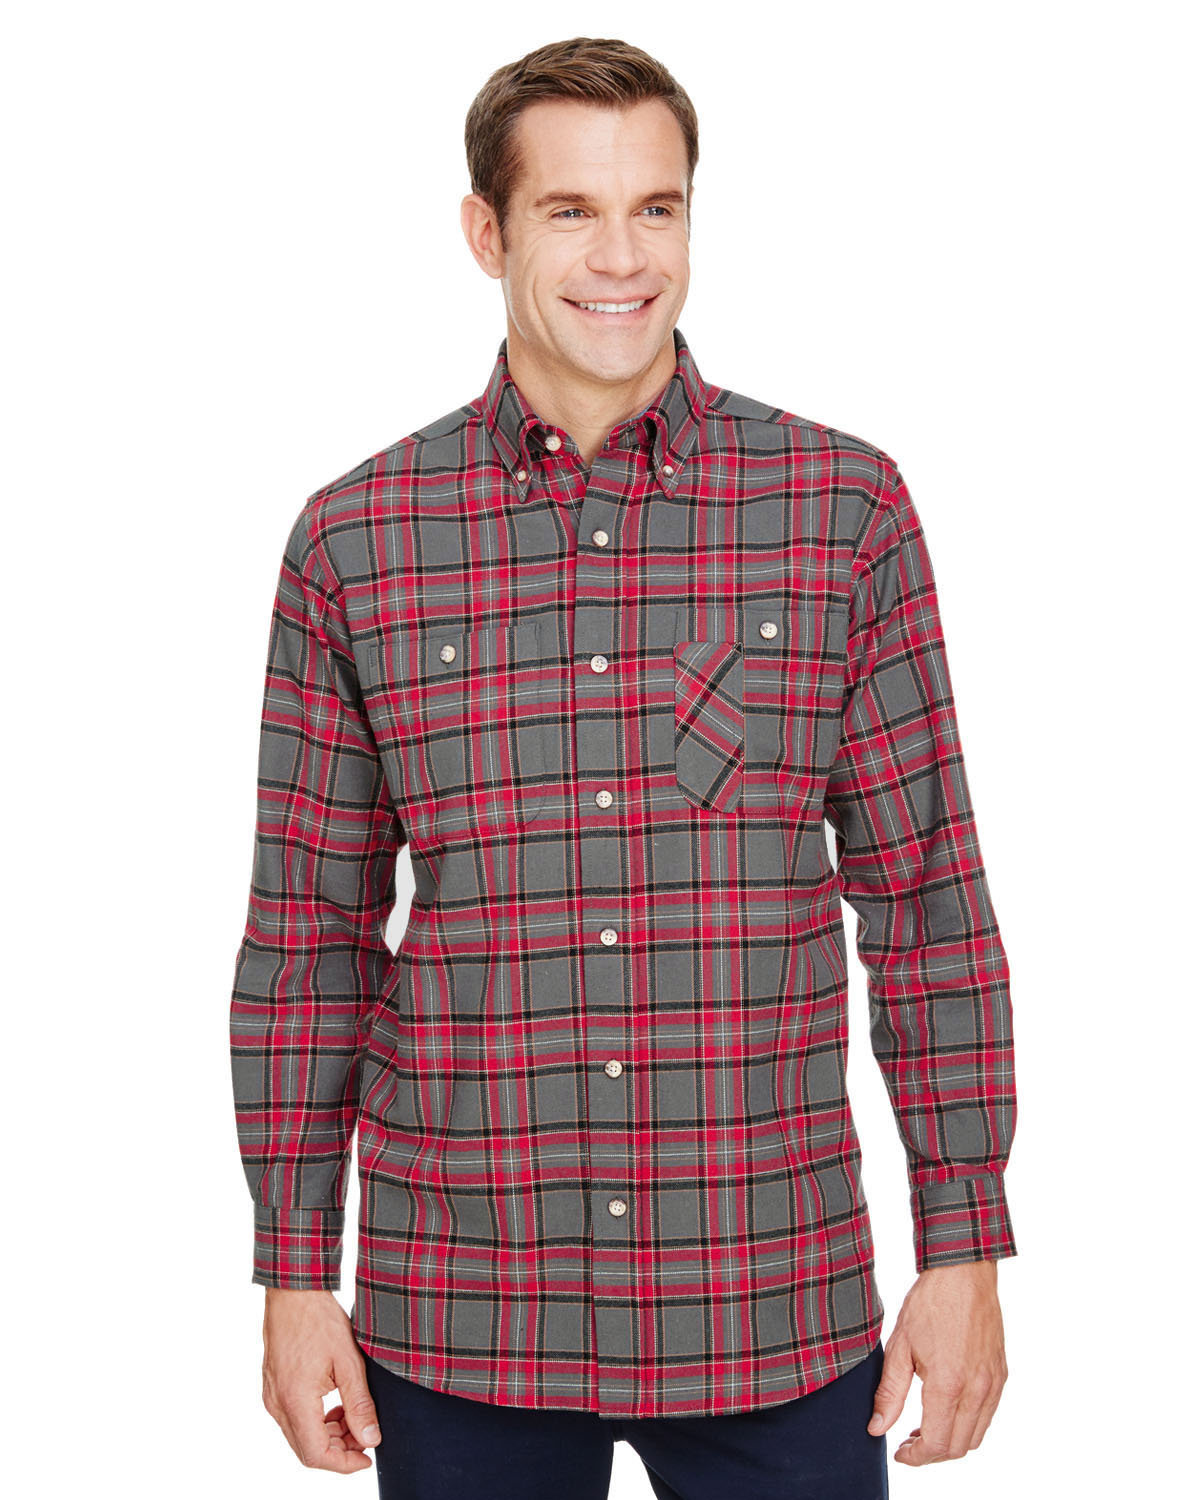 Backpacker Men's Yarn-Dyed Flannel Shirt RED GRAY